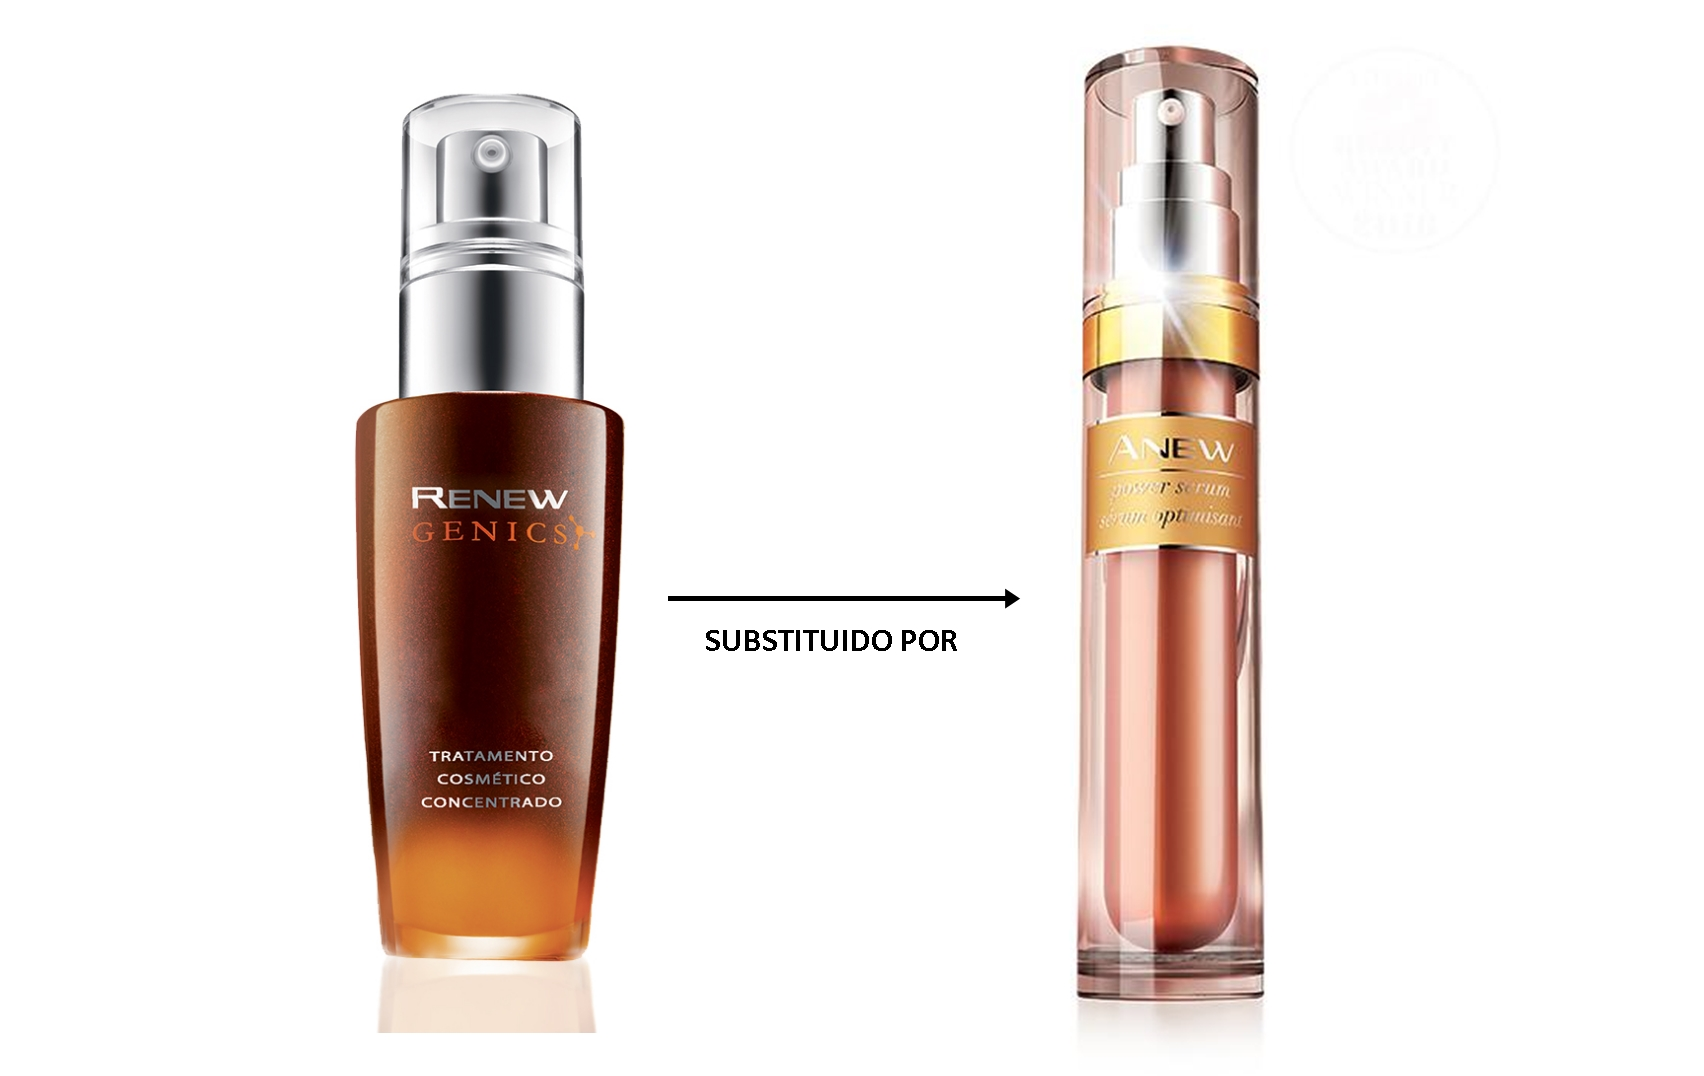 serum genics avon foi substituido pelo serum avon smart repair